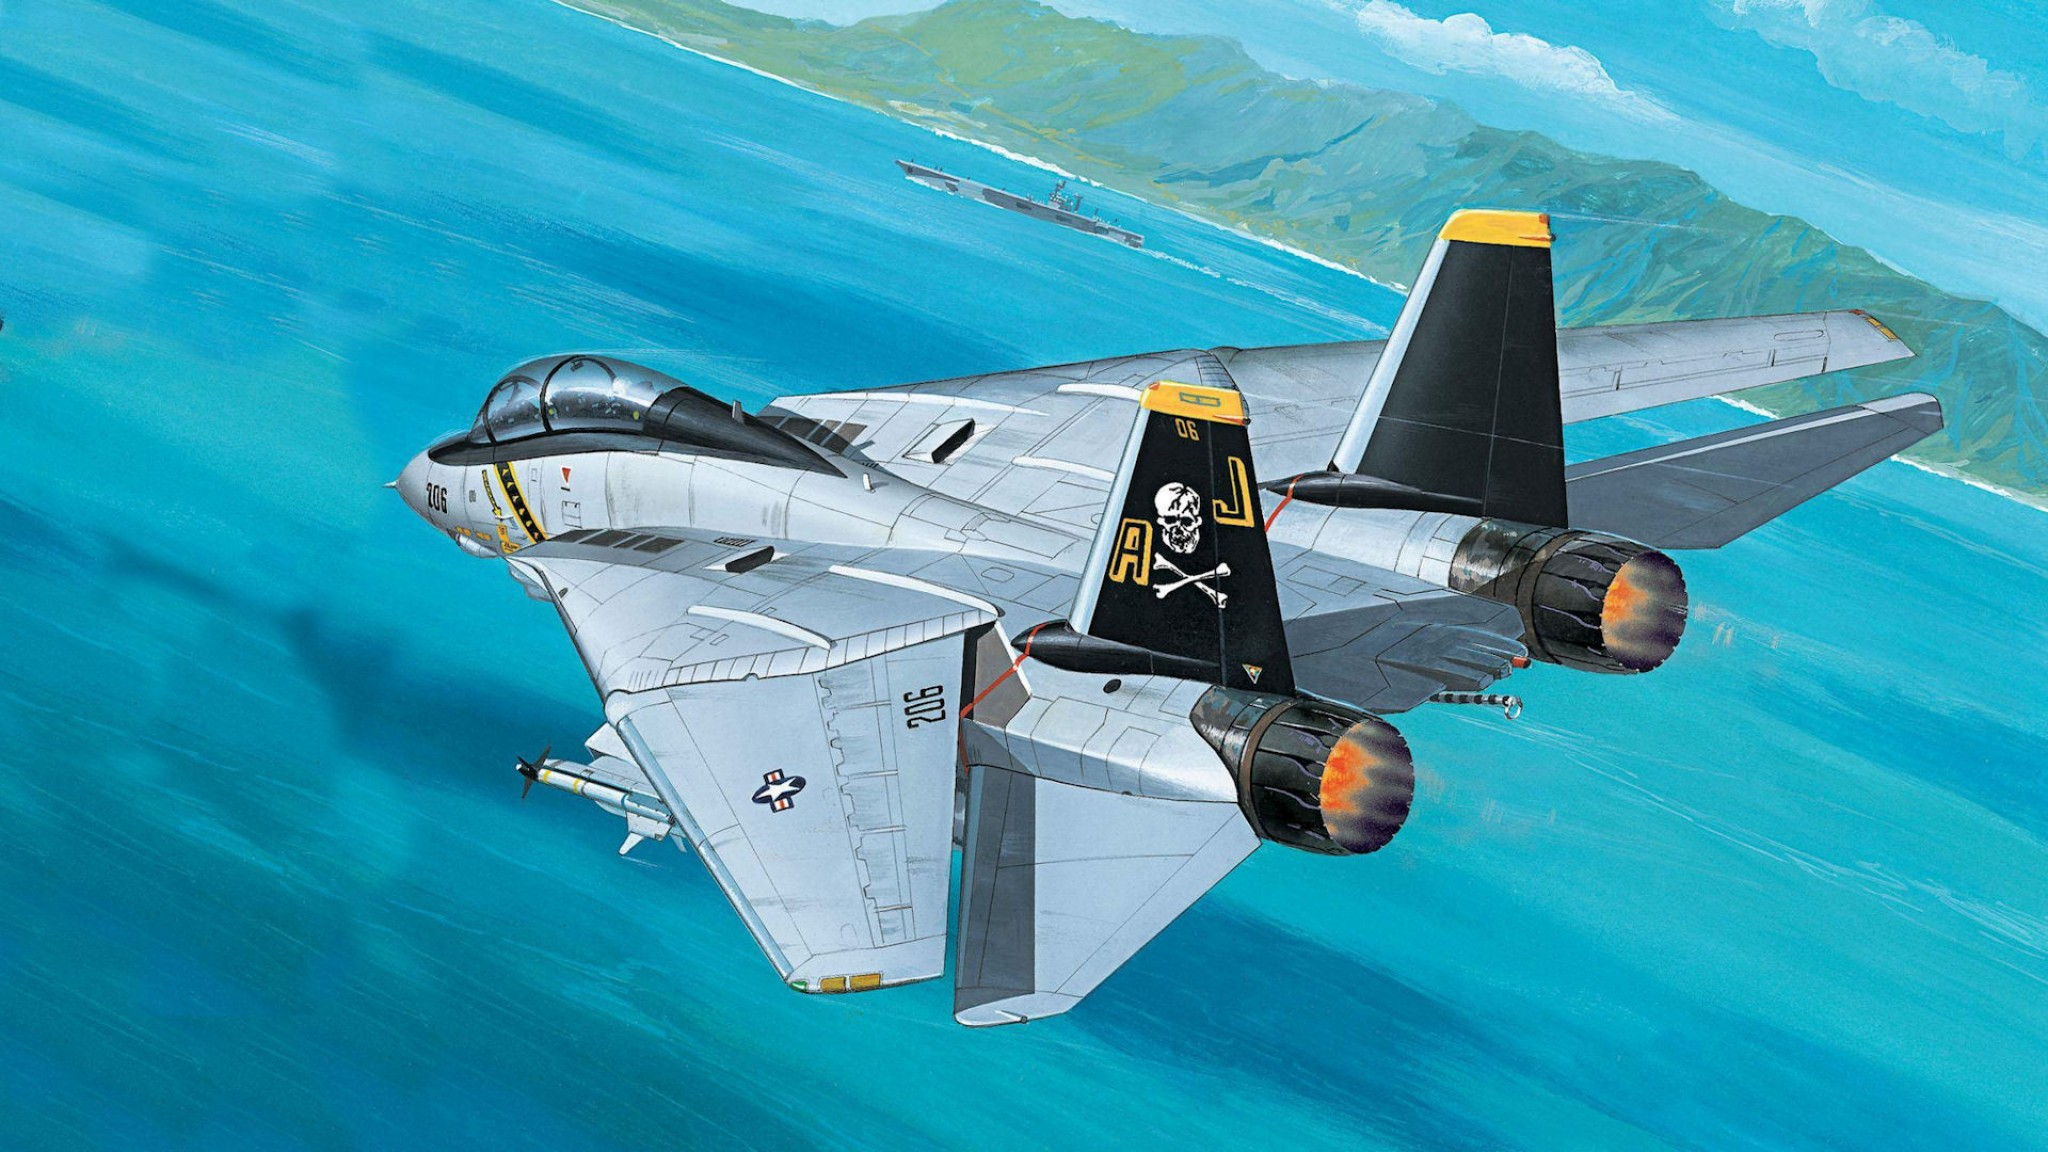 F14 Tomcat Wallpapers FREE  Android Apps on Google Play